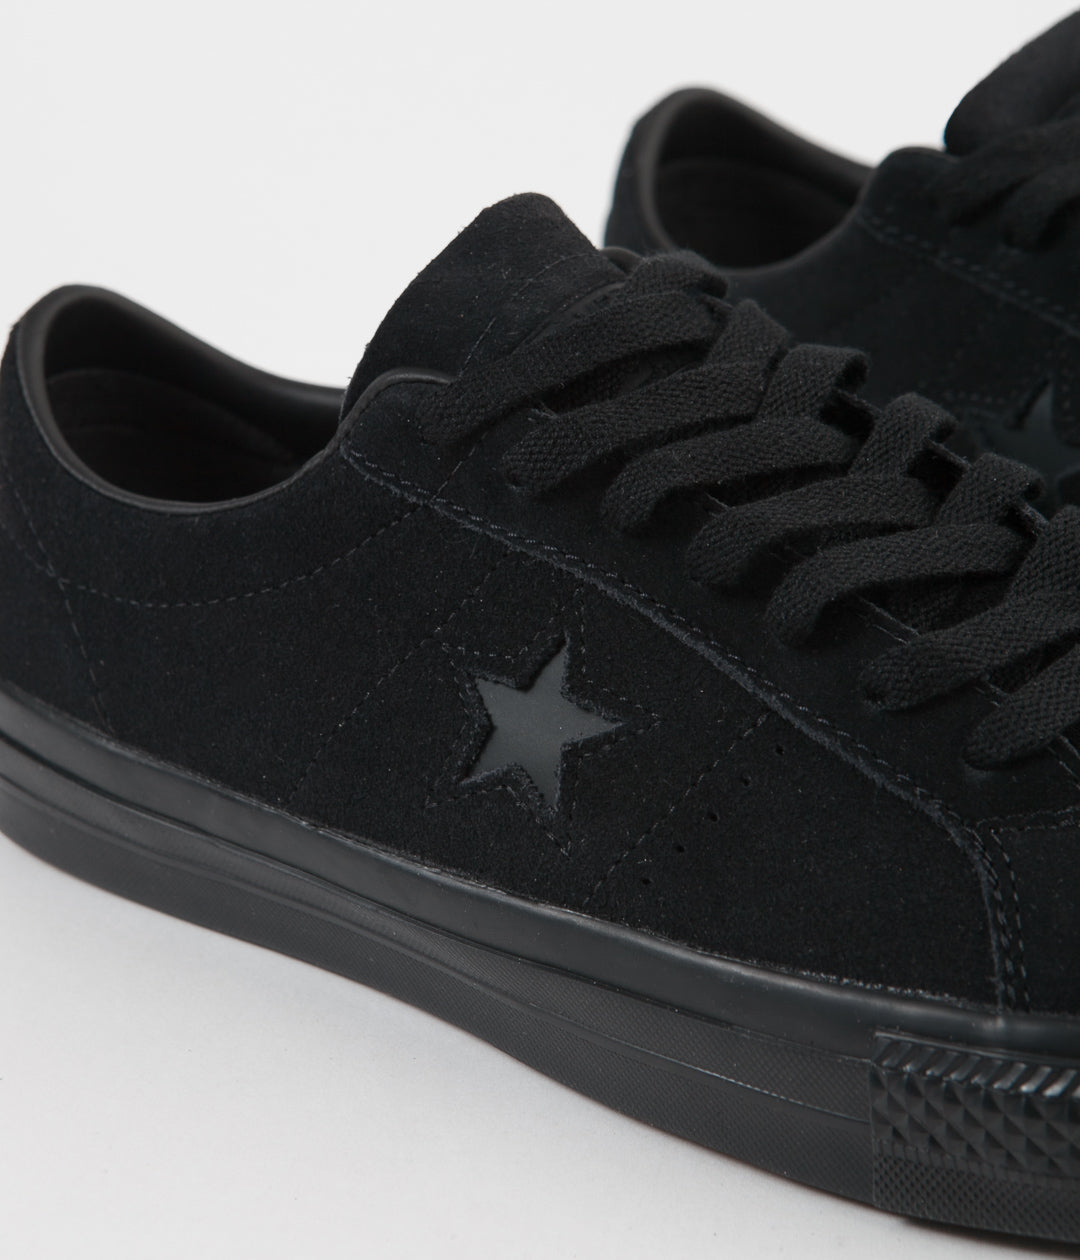 Converse One Star Pro OX Shoes  - Black / Black / Black